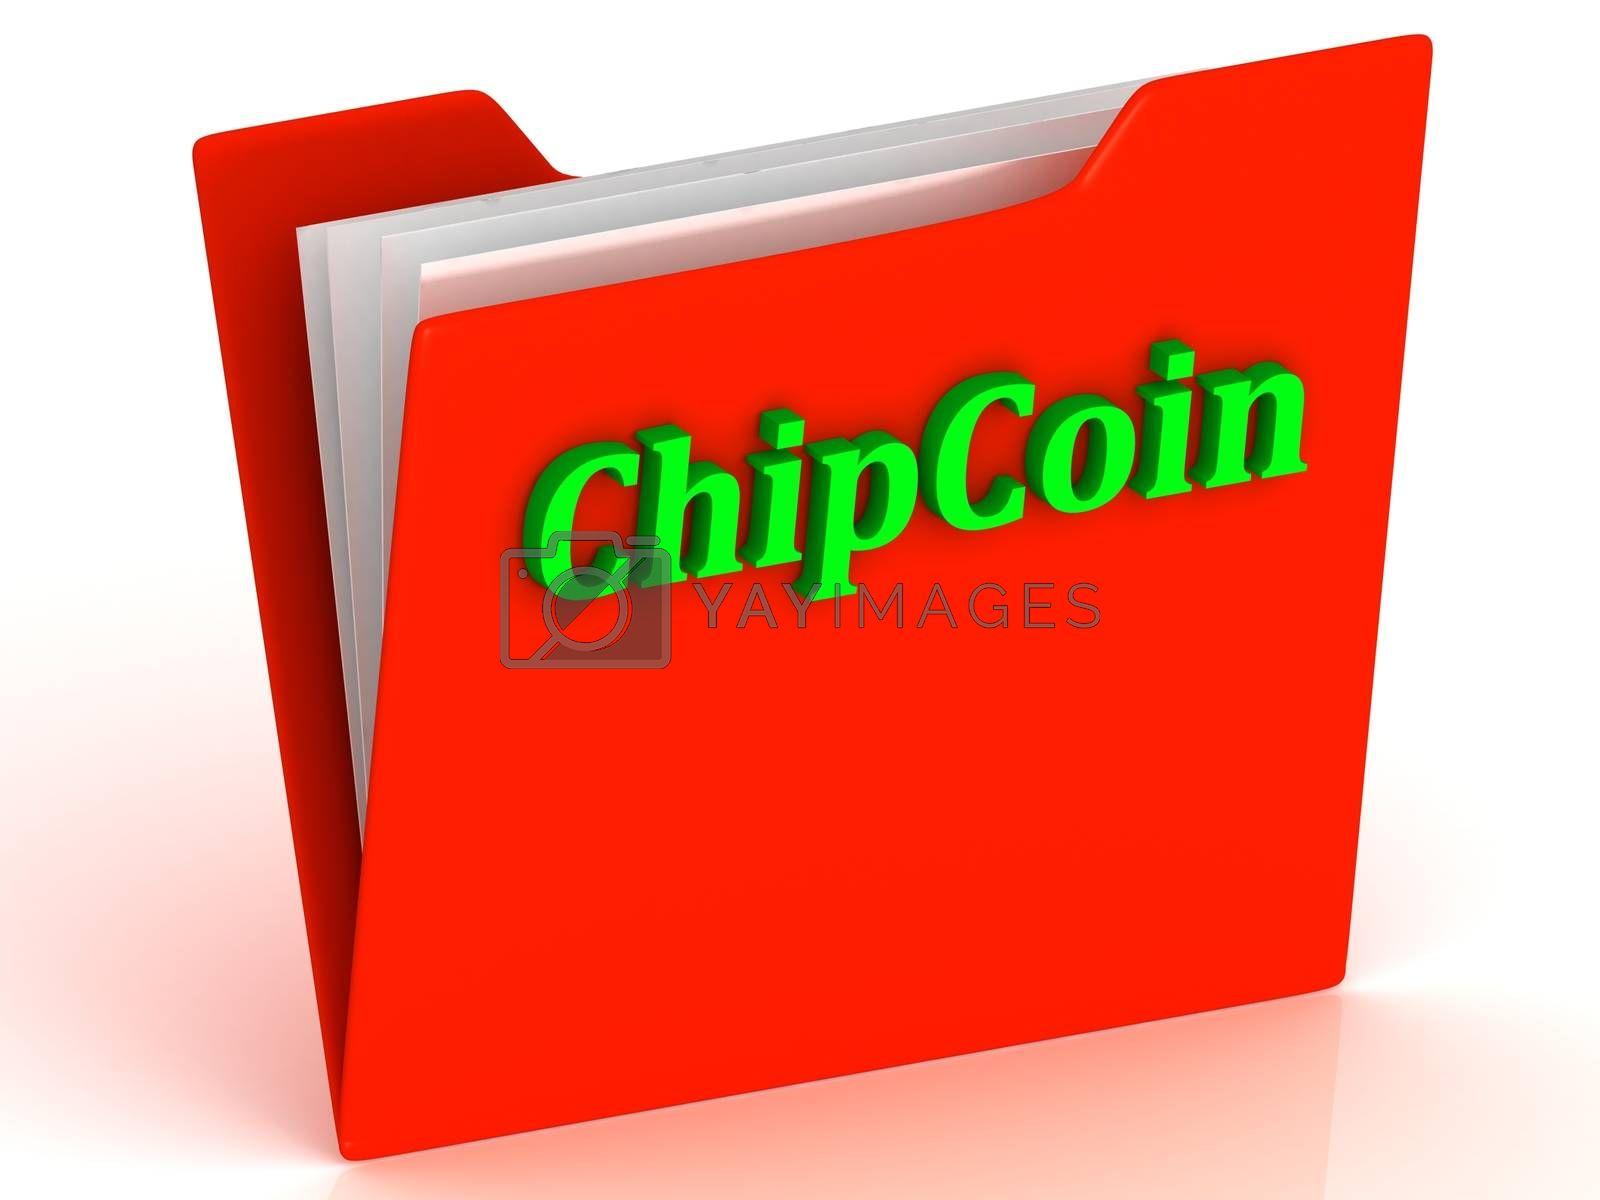 ChipCoin- bright green letters on a gold folder on a white background